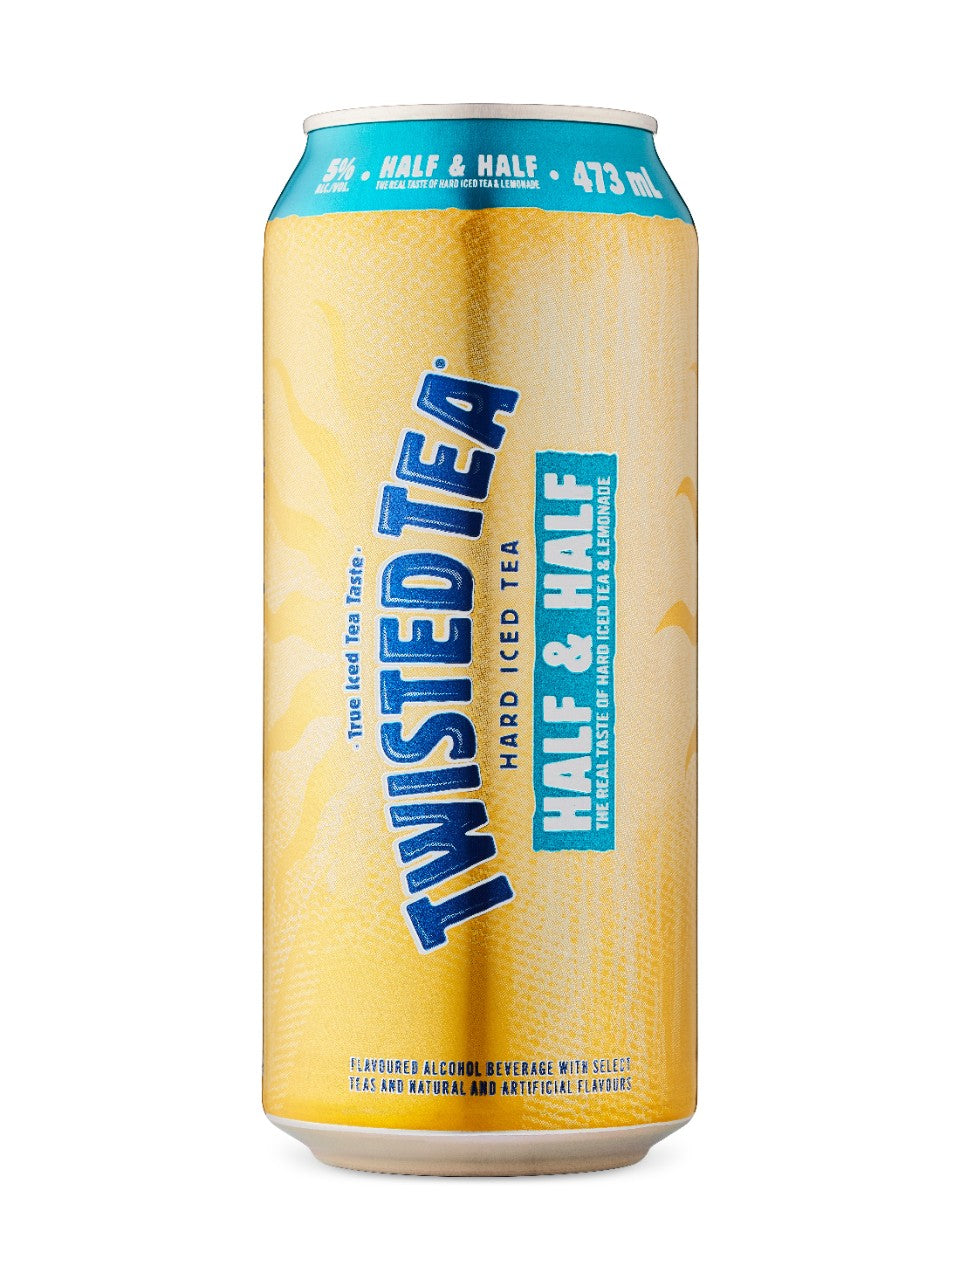 TWISTED TEA HALF & HALF 4260ml